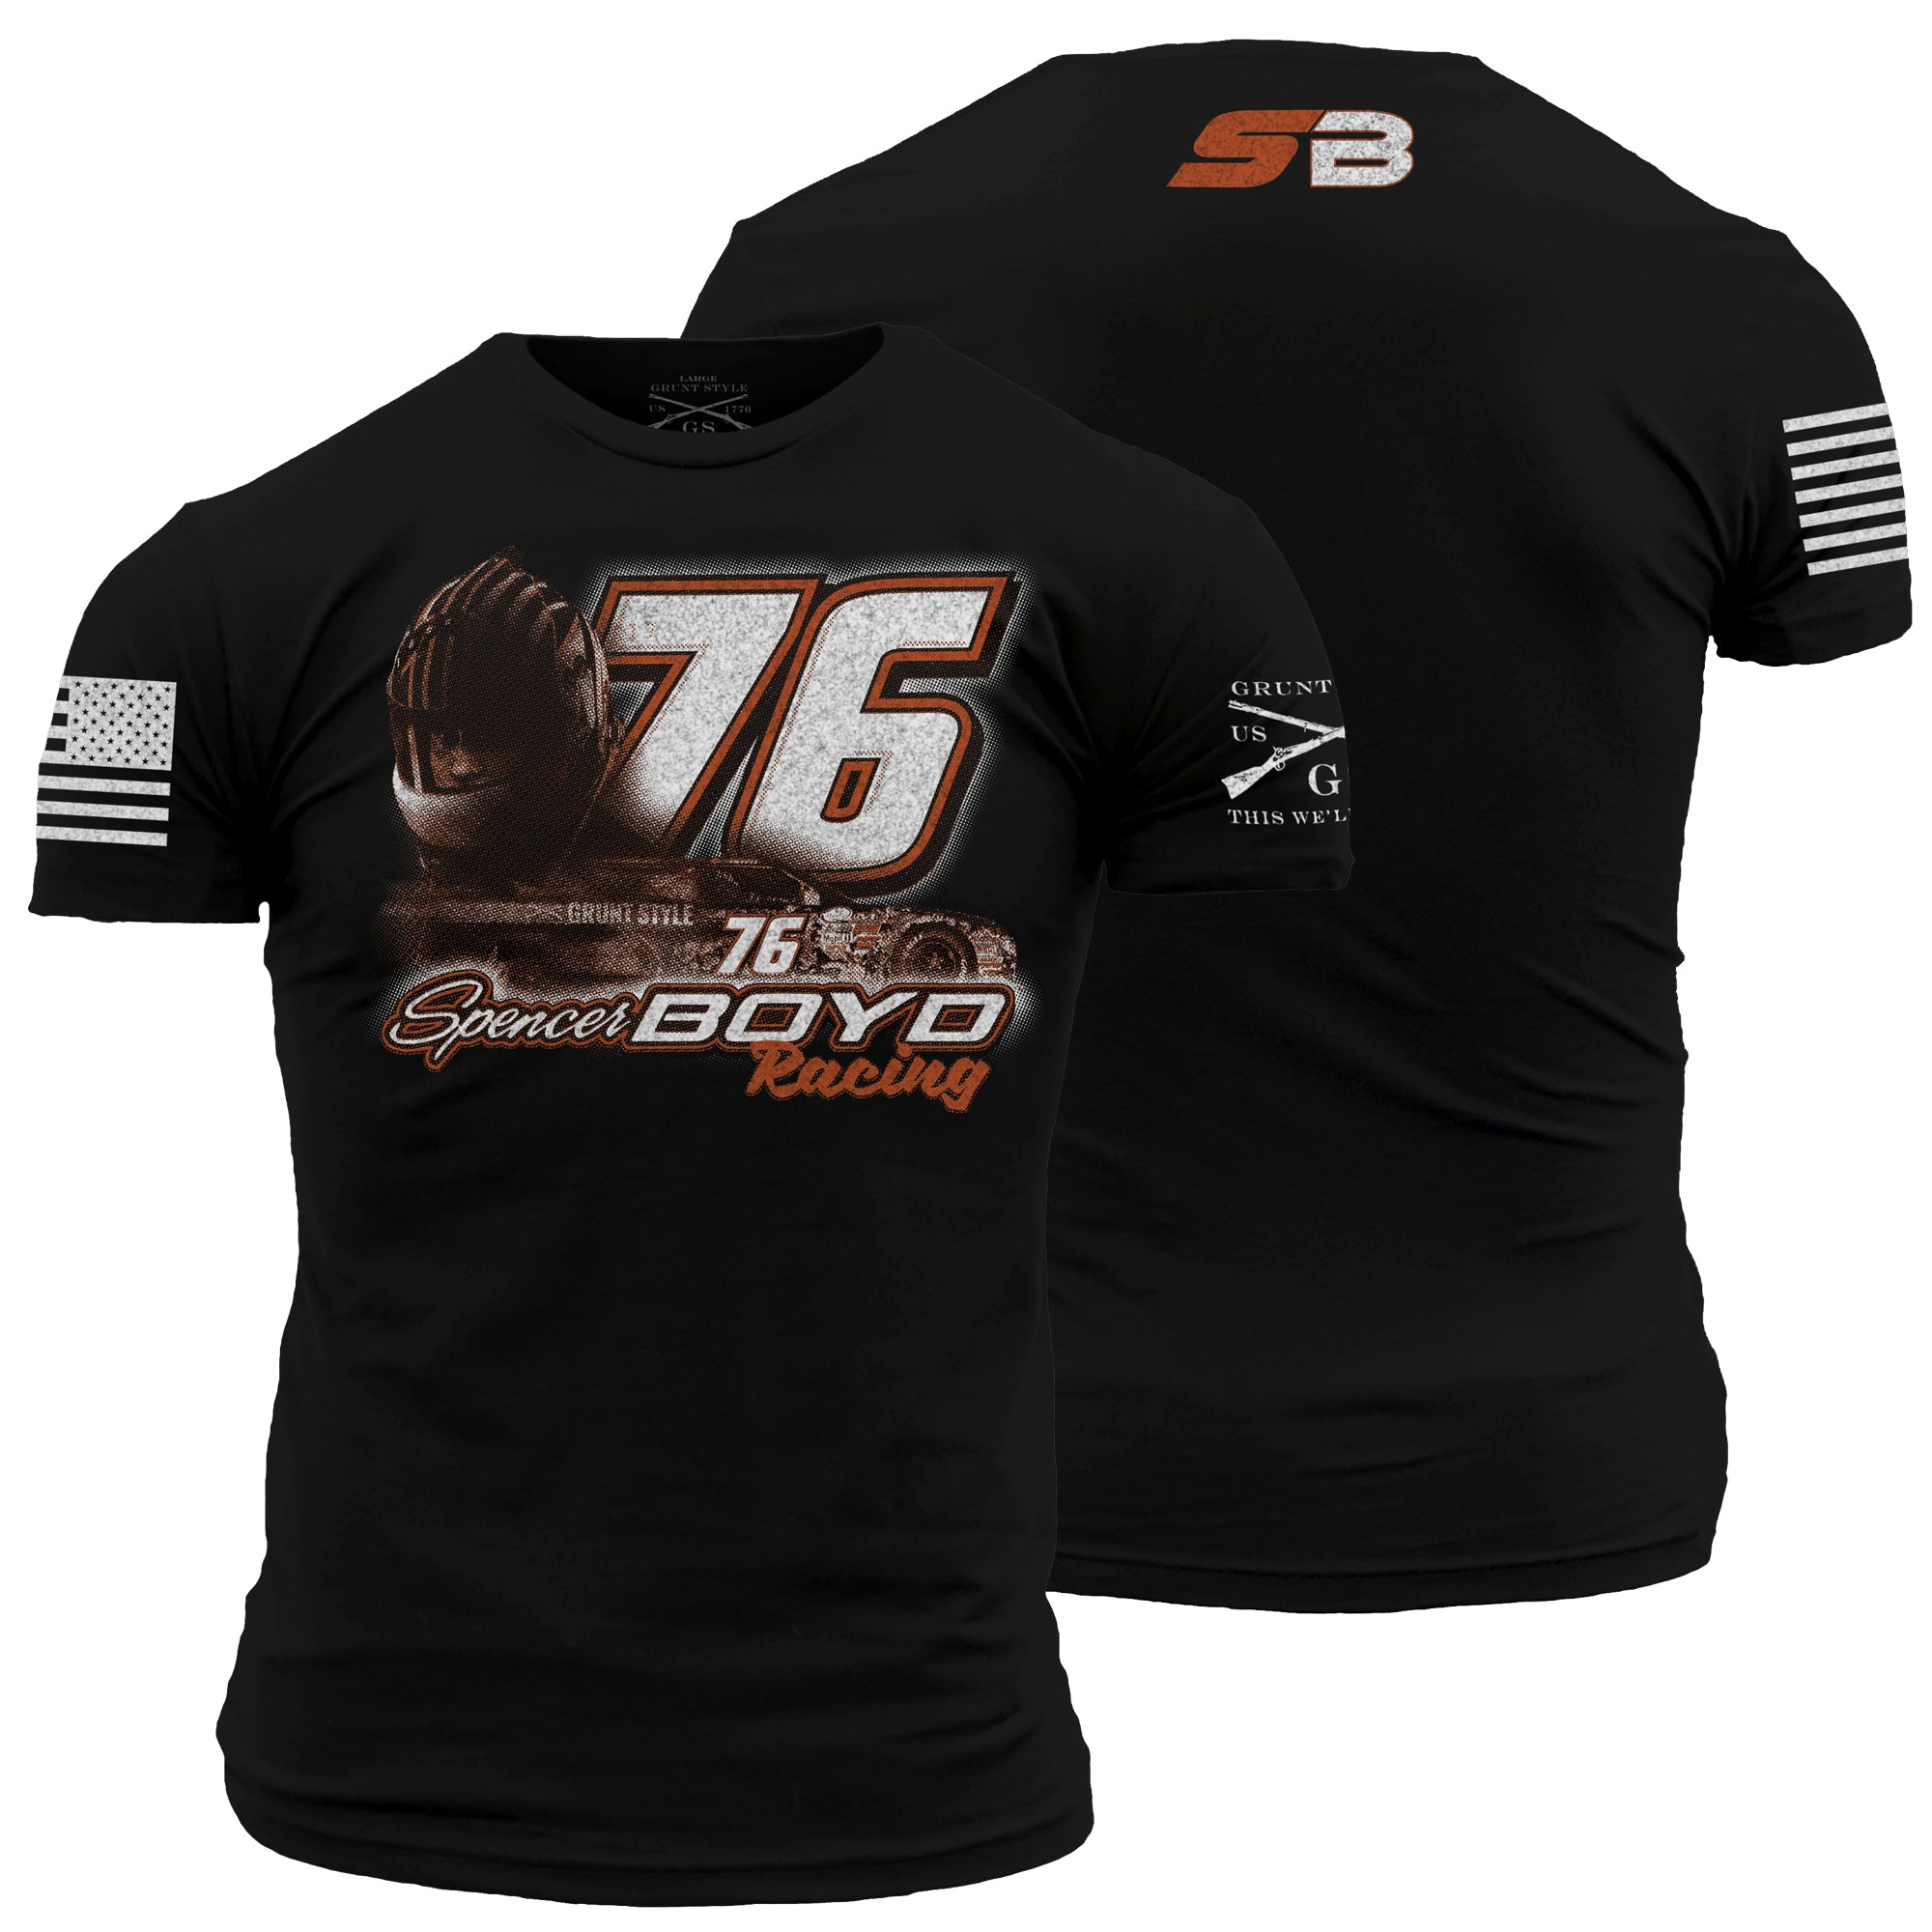 4a15141b shirt that says sports | Coupon code